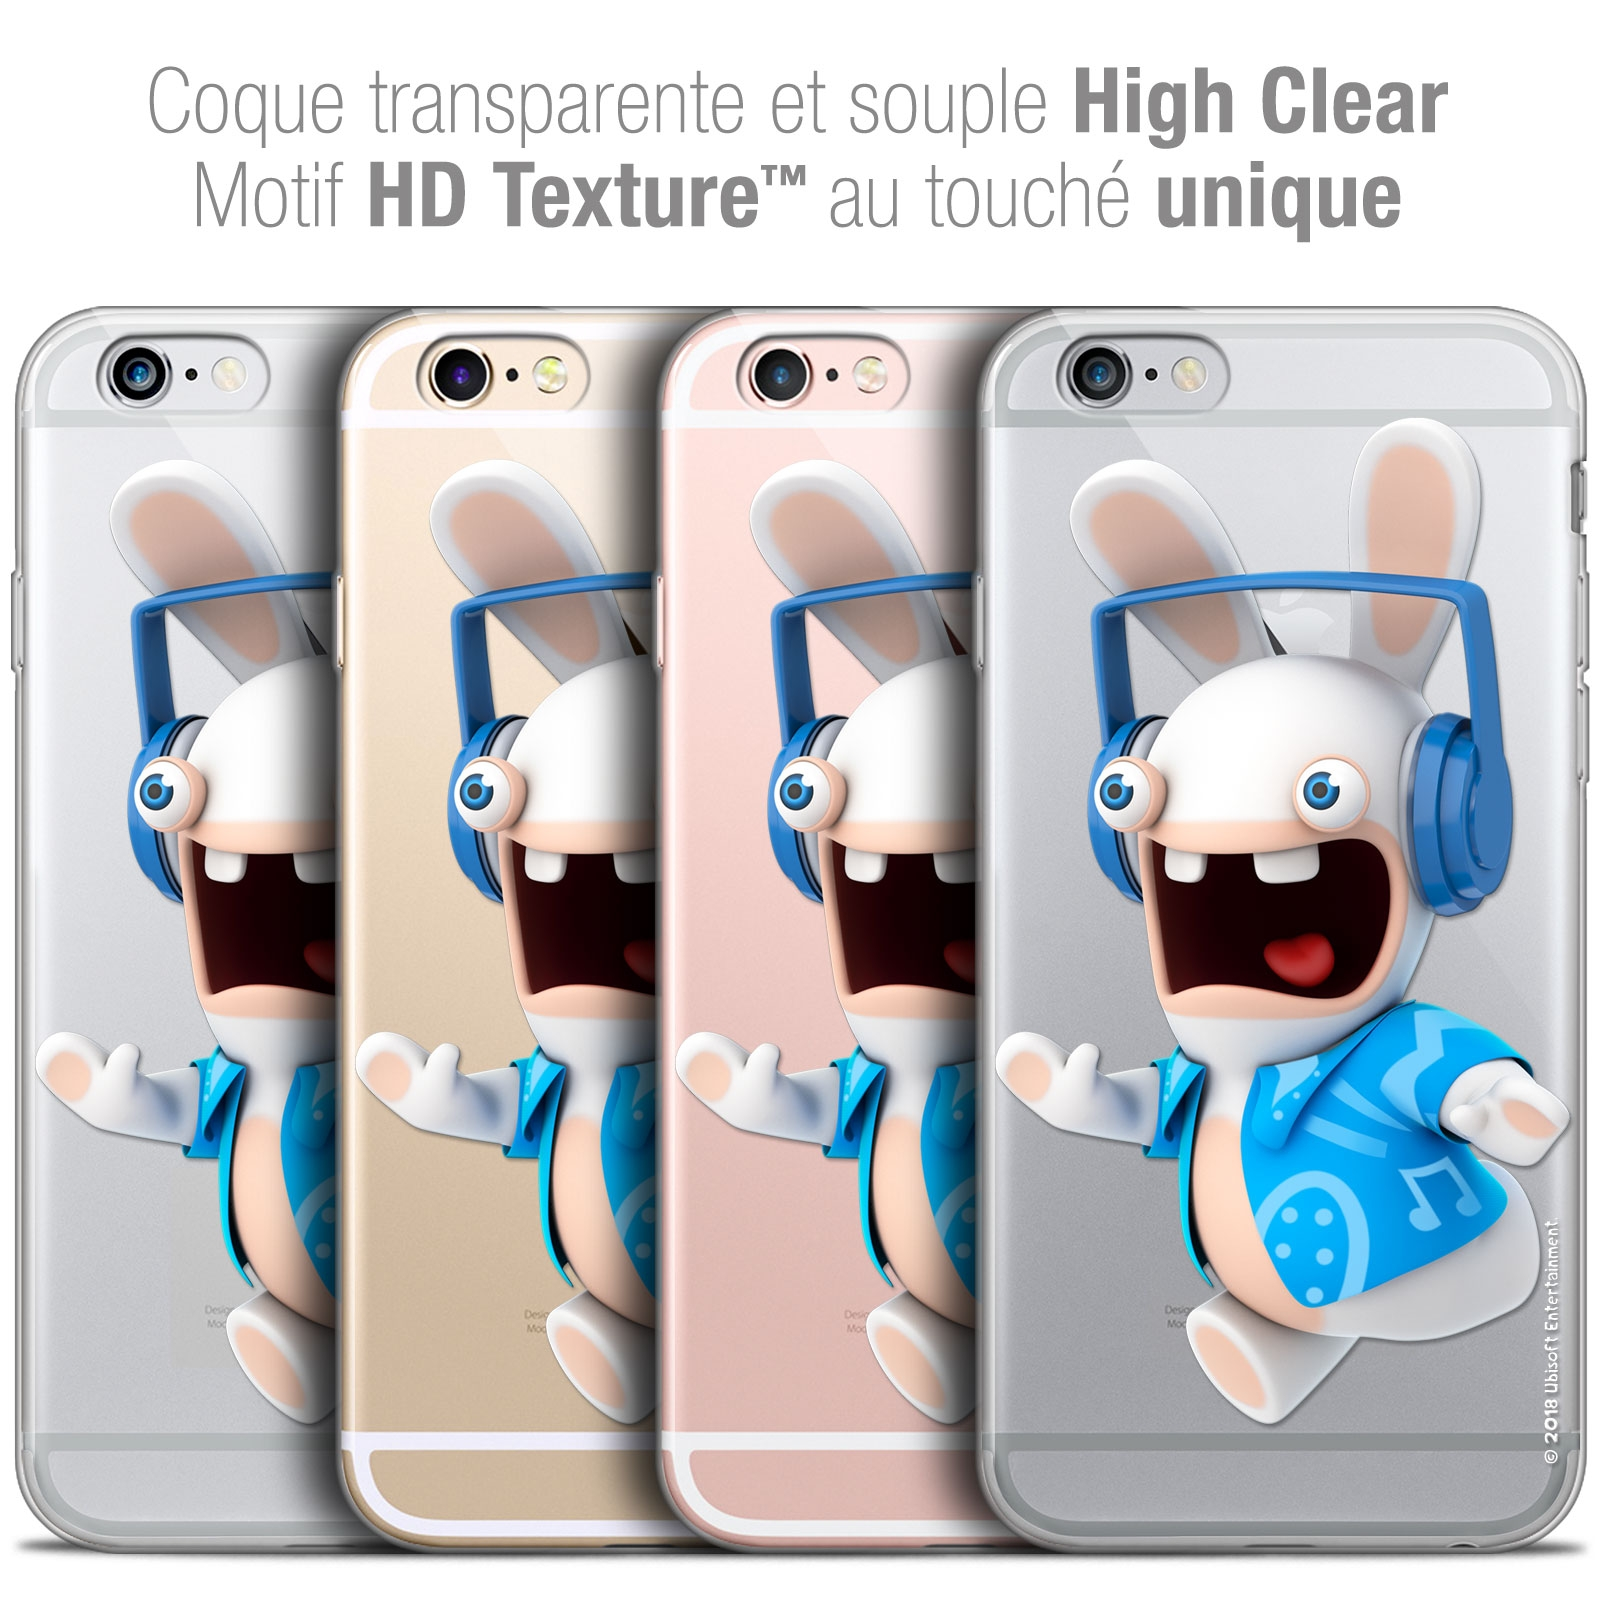 coque iphone 6 6s plus 55 extra fine lapins cretins techno lapin